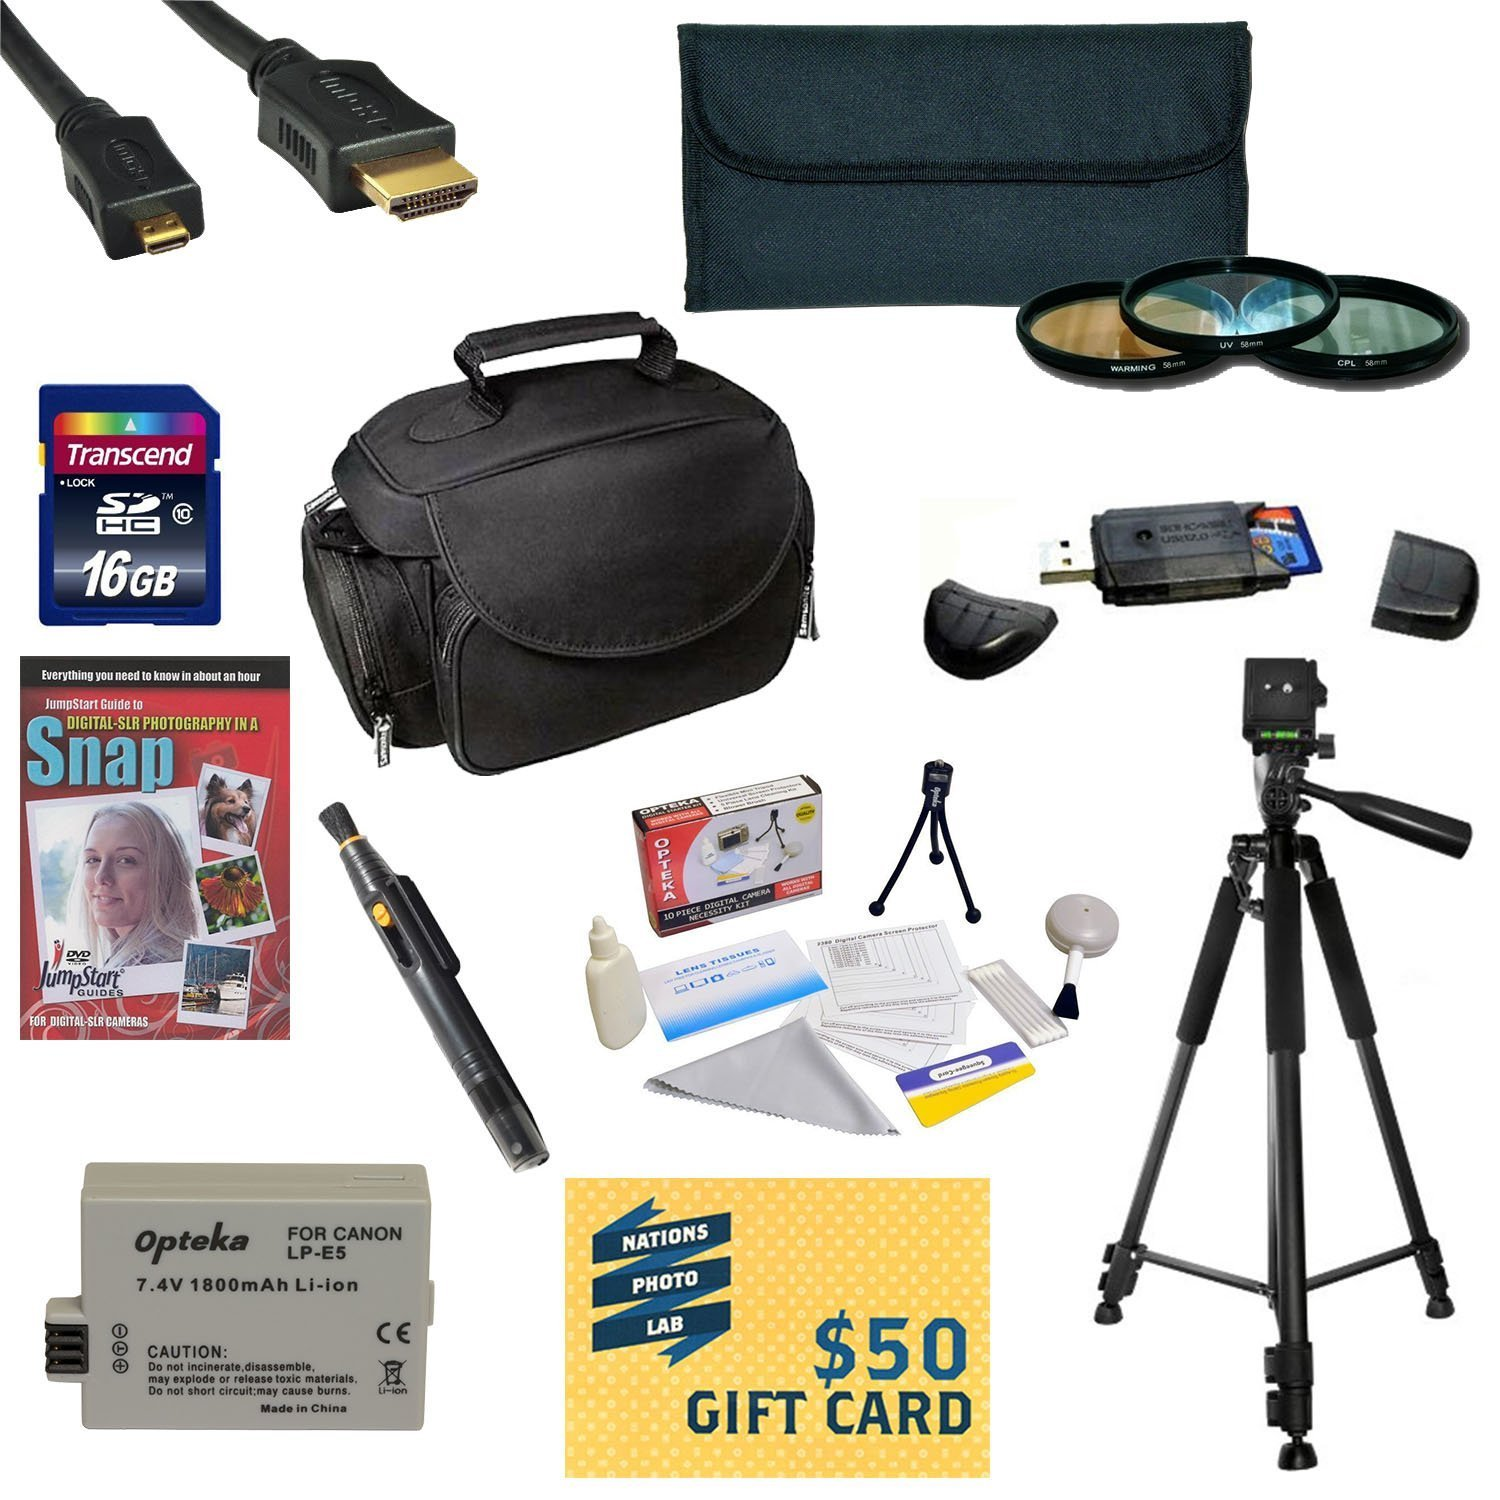 47th Street Photo Best Value Accessory Kit For the Canon 450D, 1000D, XS, XSi - Kit Includes 16GB High-Speed SDHC Card + Card Reader + Extra Battery + Travel Charger + 58MM 3 Piece Pro Filter Kit (UV, CPL, FLD Lens) + HDMI Cable + Padded Gadget Bag + Prof